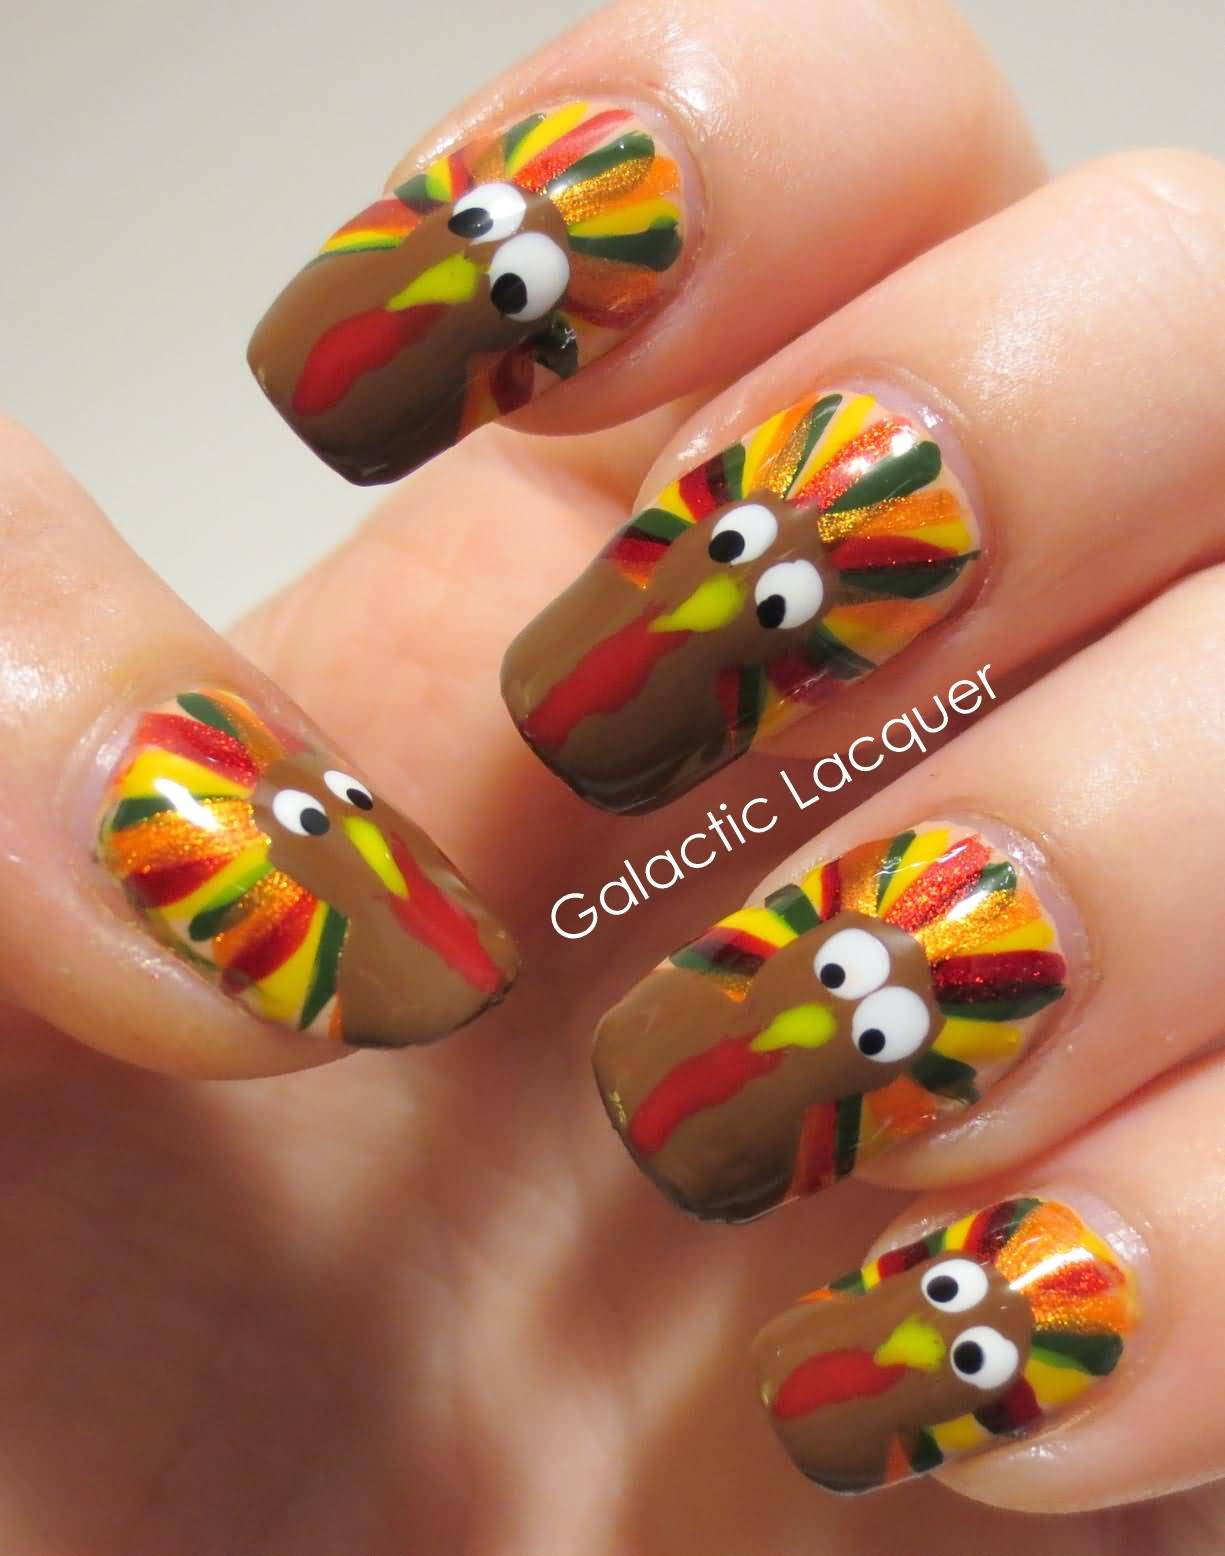 Beautiful Turkey Design Thanksgiving Nail Art - 25+ Latest Thanksgiving Nail Art Designs